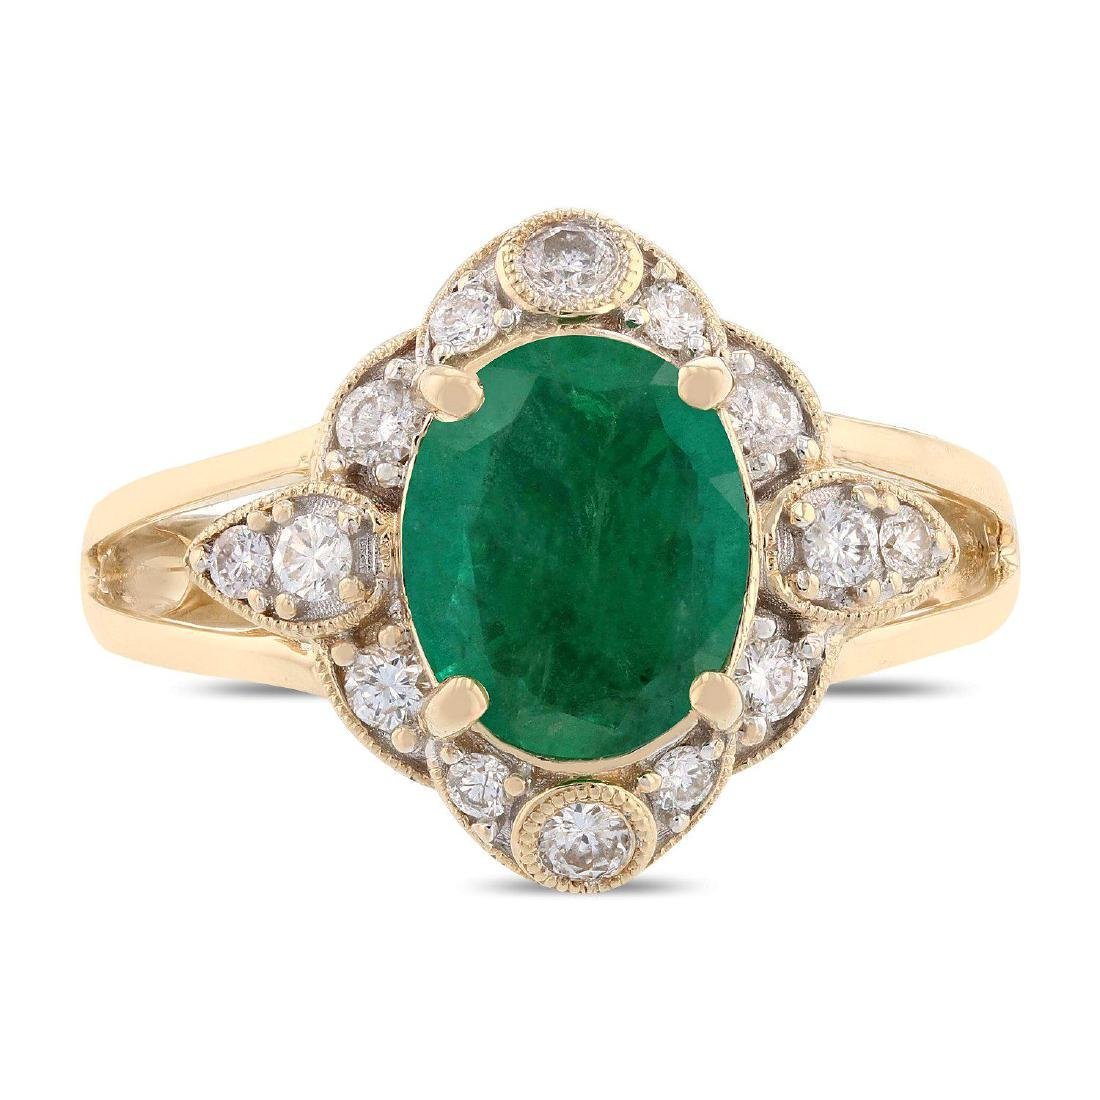 1.68ct Emerald and 0.33ctw Diamond 14K Yellow Gold Ring - 6